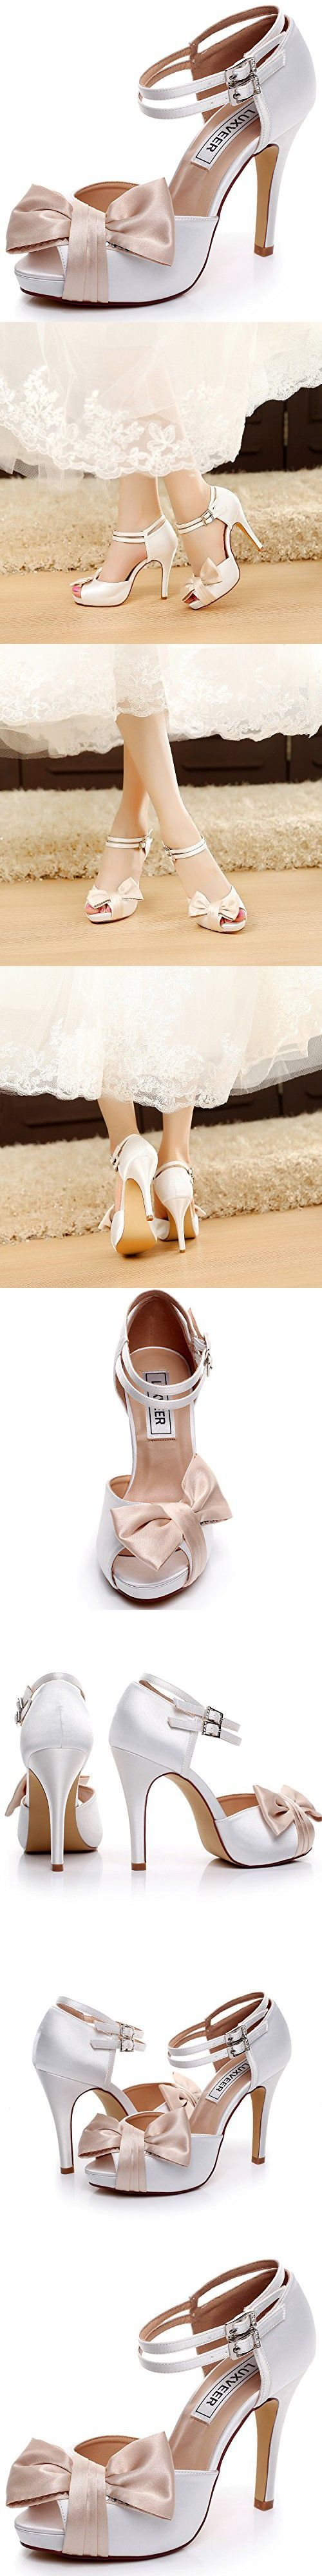 LUXVEER White and Champagne Wedding Sandals with Bowknot 4 inch Heels,RS-9807-Sandals-Bowknot-EU39